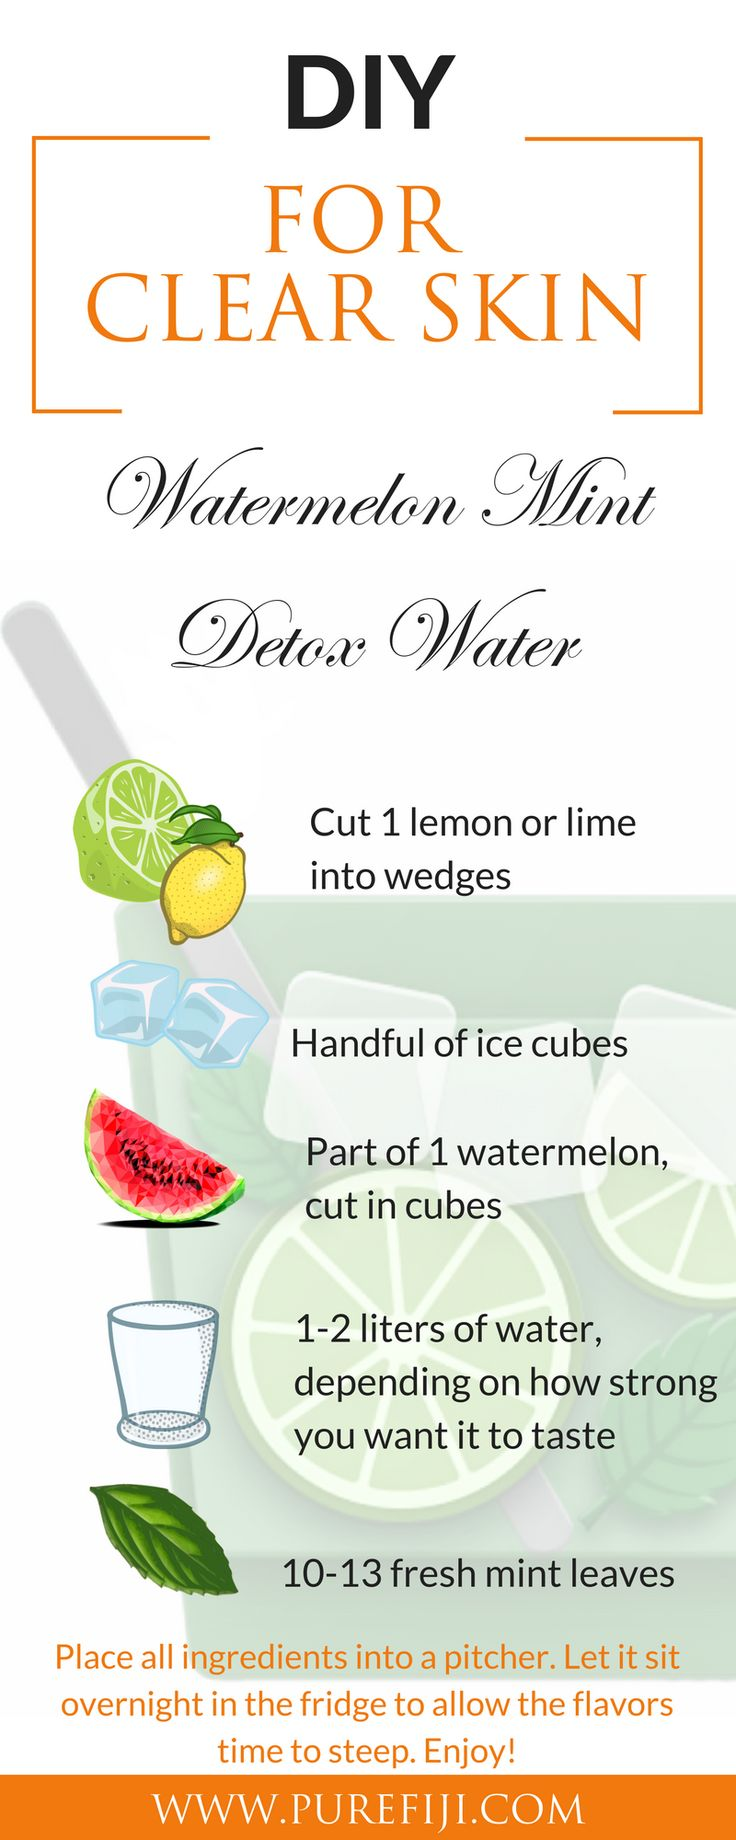 Beauty Hacks | Mint is known for soothing and healing inflammation and keeping acne at bay. Mint is rich in anti-oxidants and flavonoids. Watermelon helps to flush the body of toxins and is full of anti-oxidants. Get more DIY healthy recipes for clear skin and beauty tips at http://www.purefiji.com/blog/drink-clear-glowing-skin/